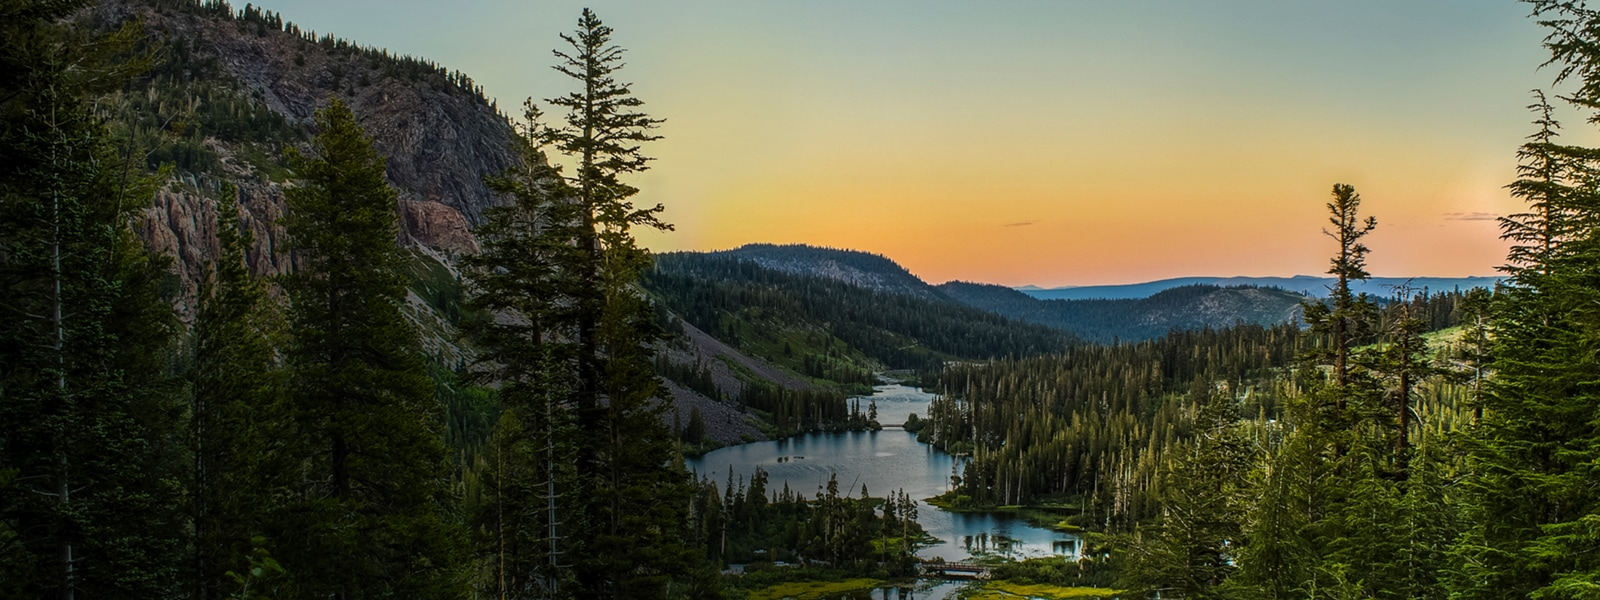 A lake reflects a sunrise in a forested mountain valley